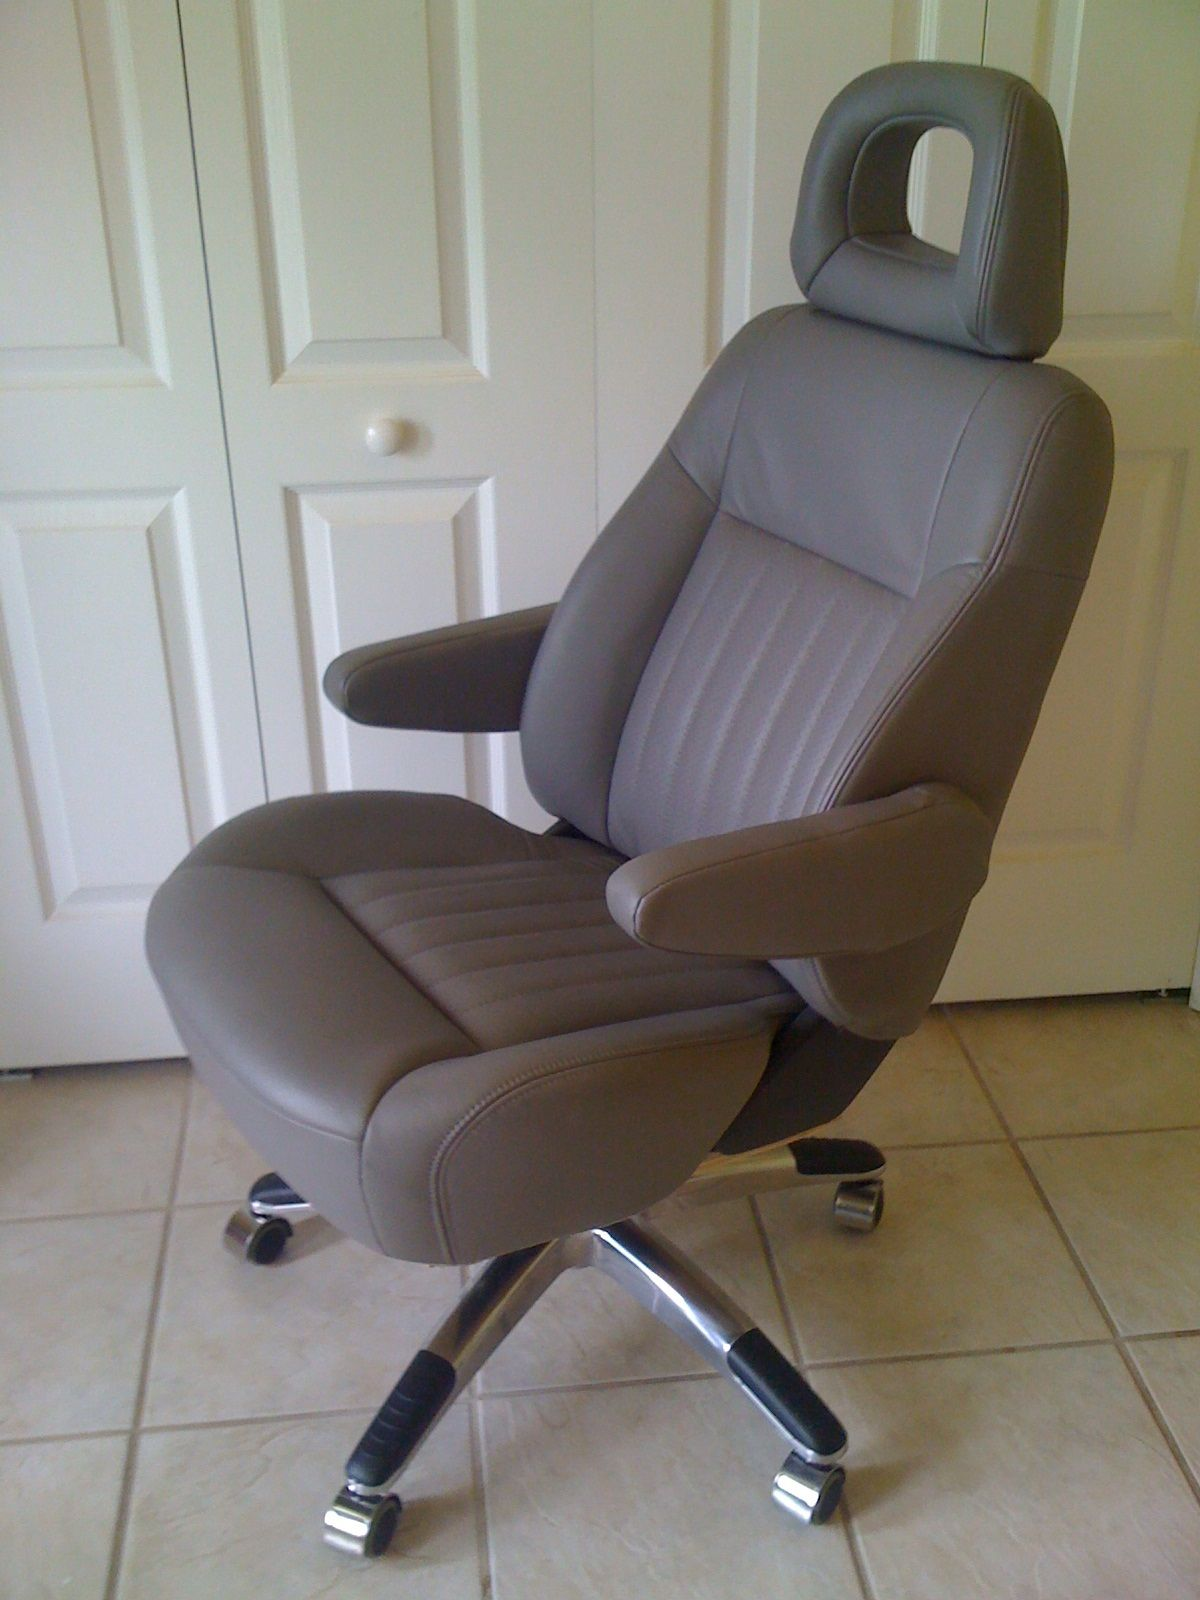 Car seat transformed into executive office chair by the Ultimate Upcyclers & Car seat transformed into executive office chair by the Ultimate ...